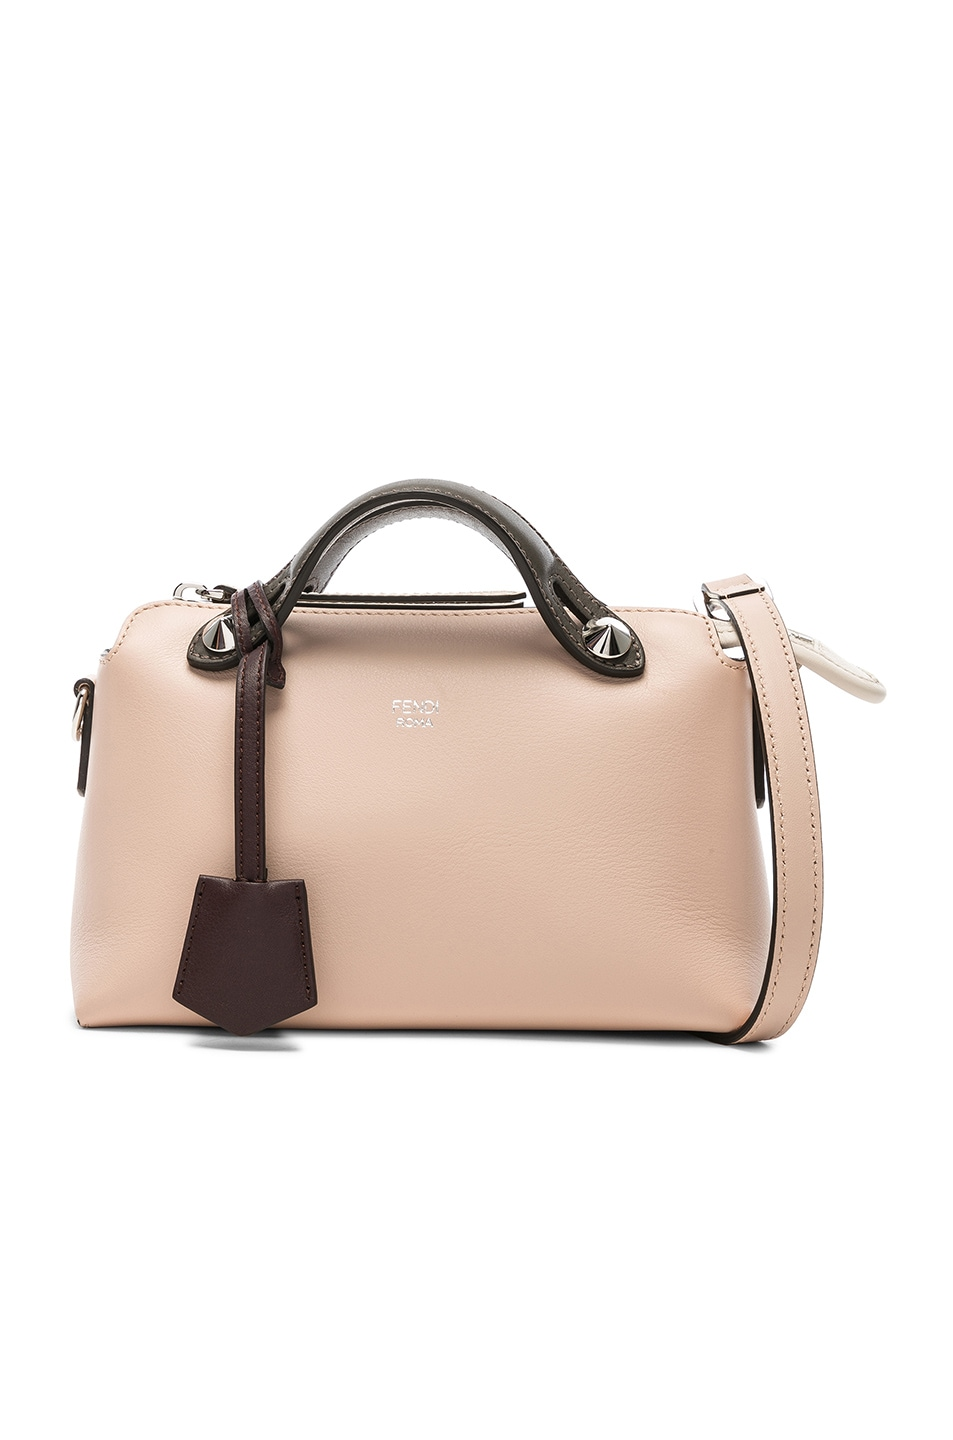 37937e7c66 Image 1 of Fendi Mini By The Way in Pink & Black